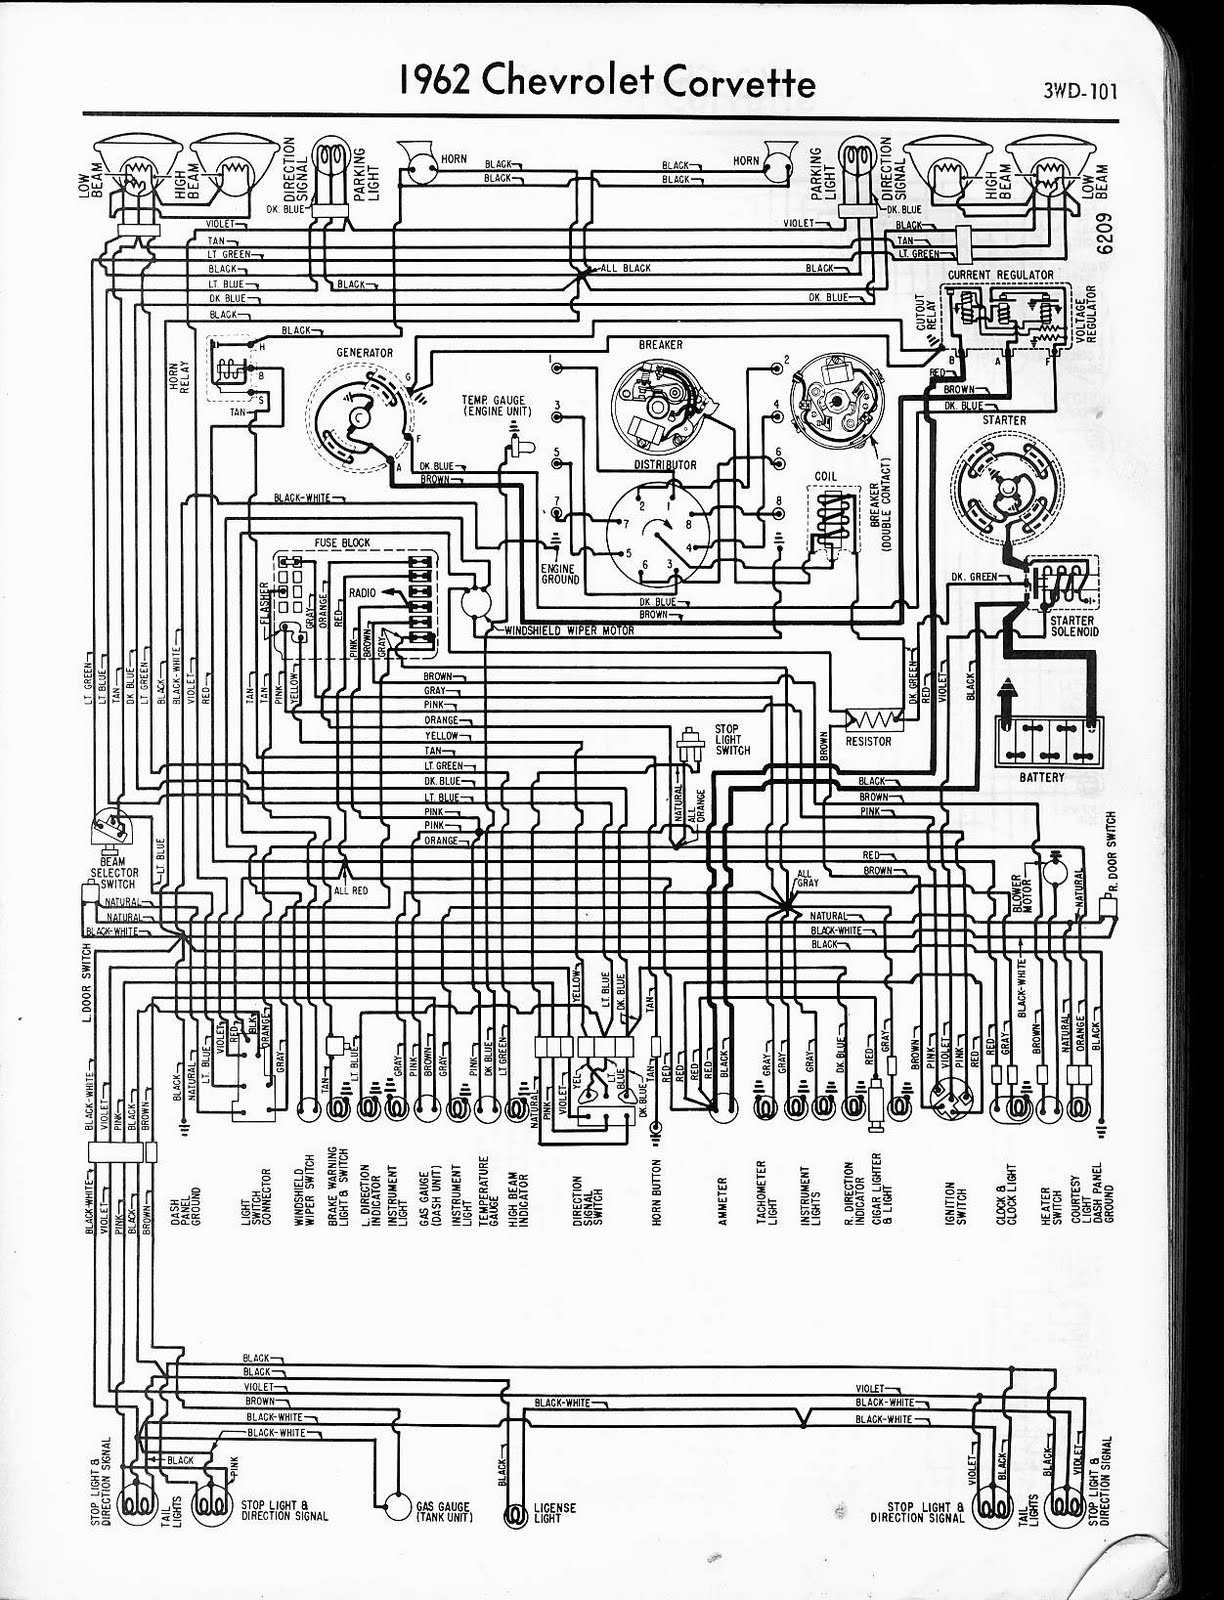 Wiring Diagram 1954 Chevy 1971 Corvette Free Auto 1962 Chevrolet